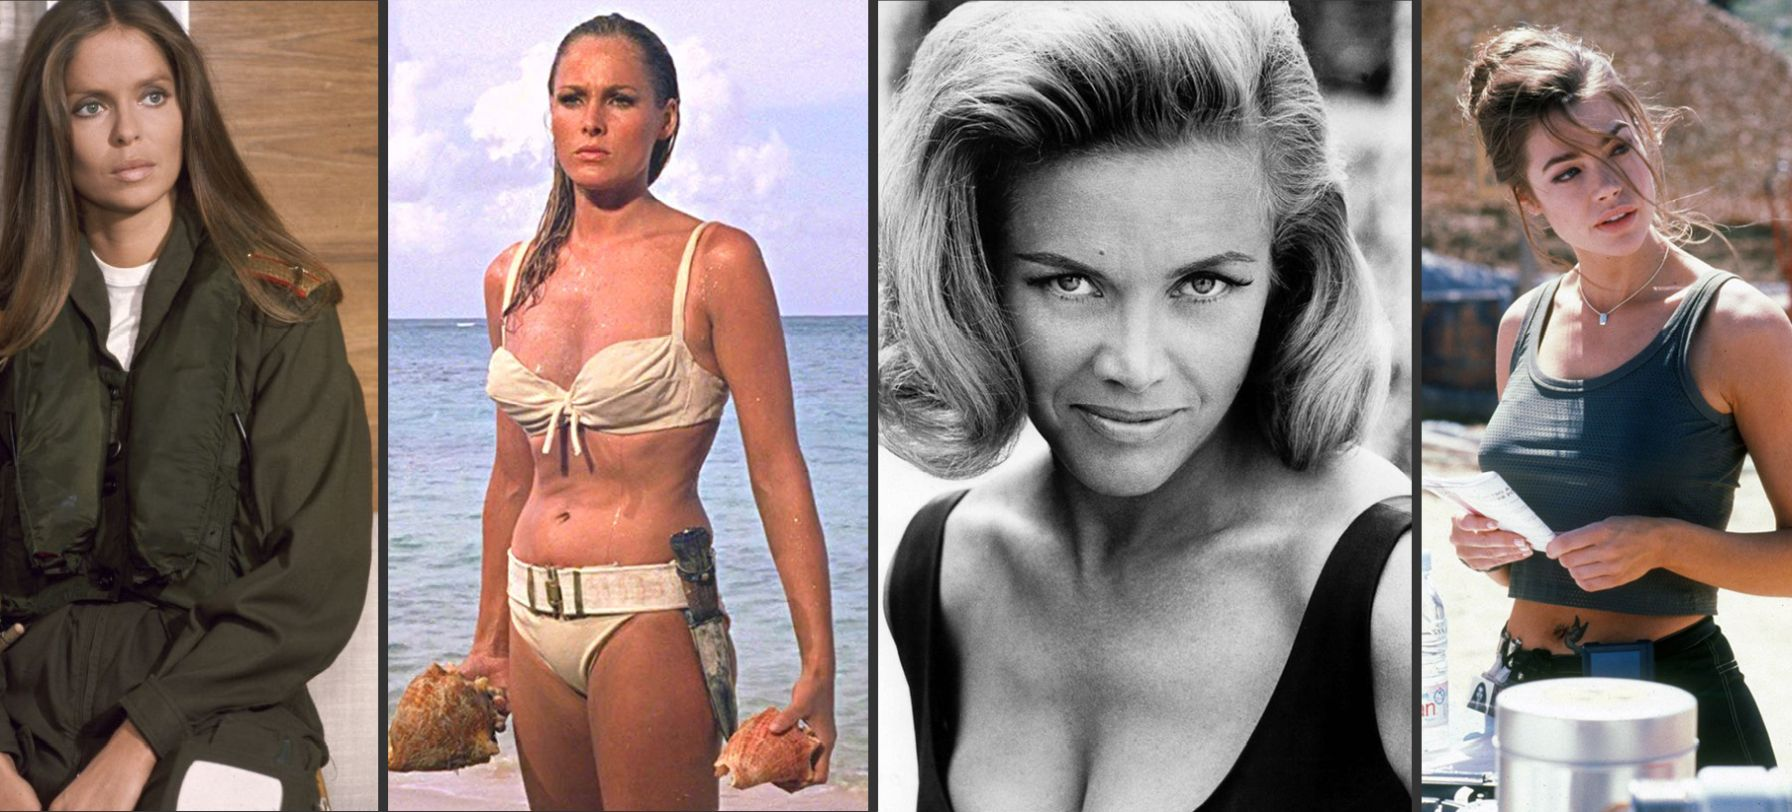 james bond girls with funny names